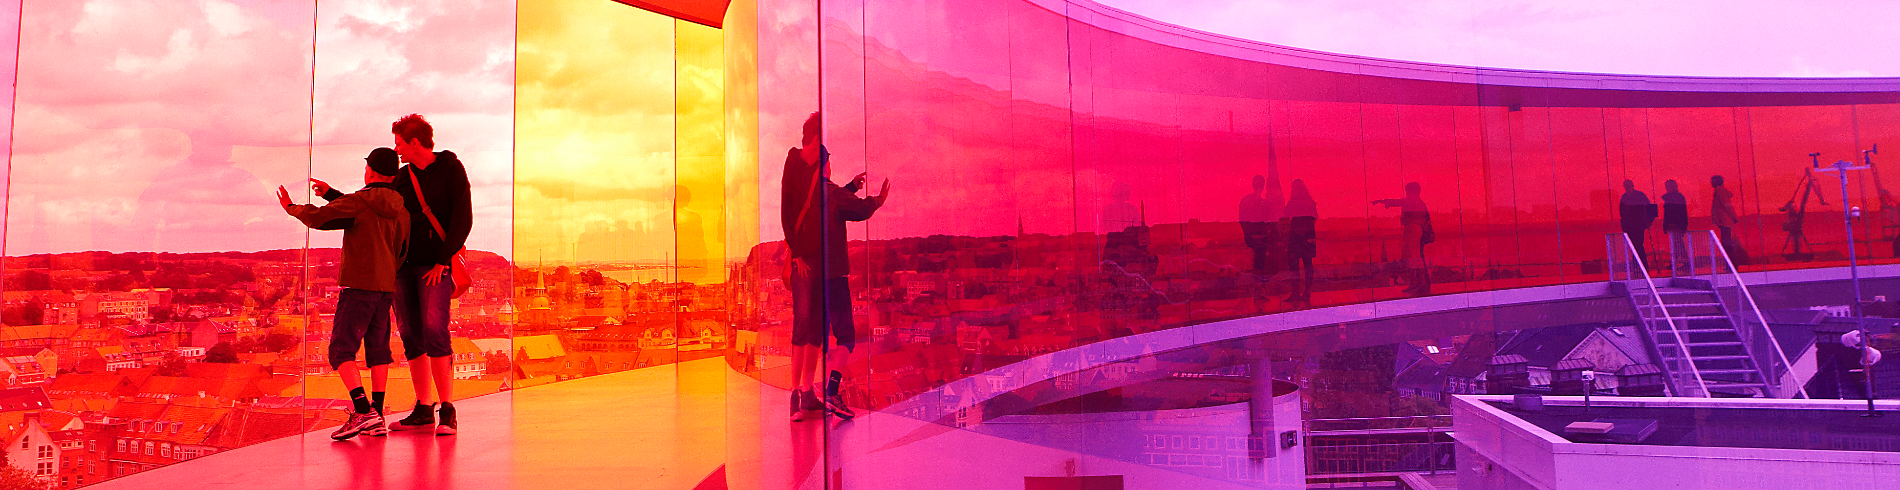 Mediecenter for Aarhus cover image